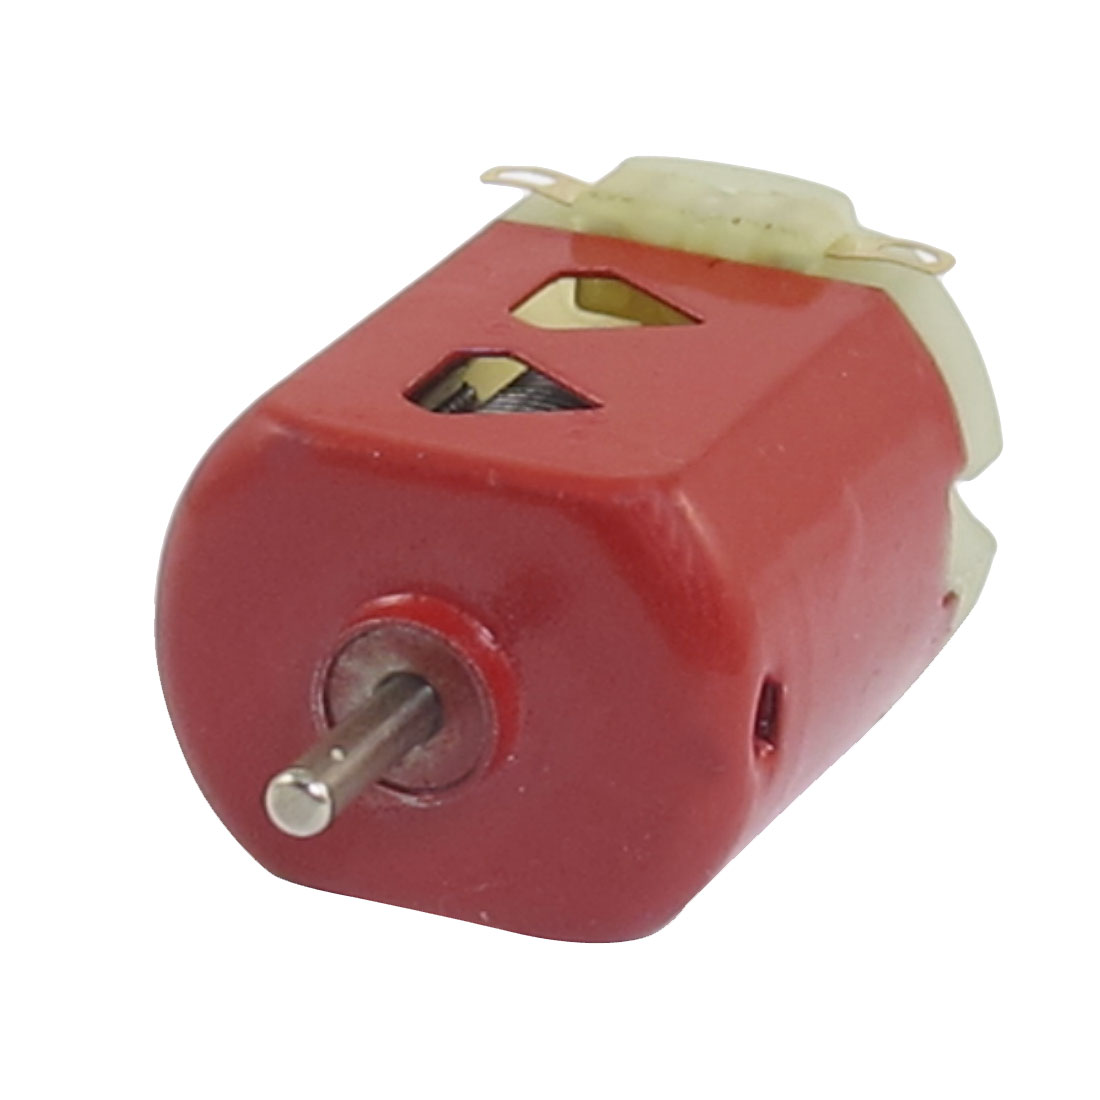 9000RPM Rotating Speed Motor 130 1.5VDC Red for Small Size Racing Car